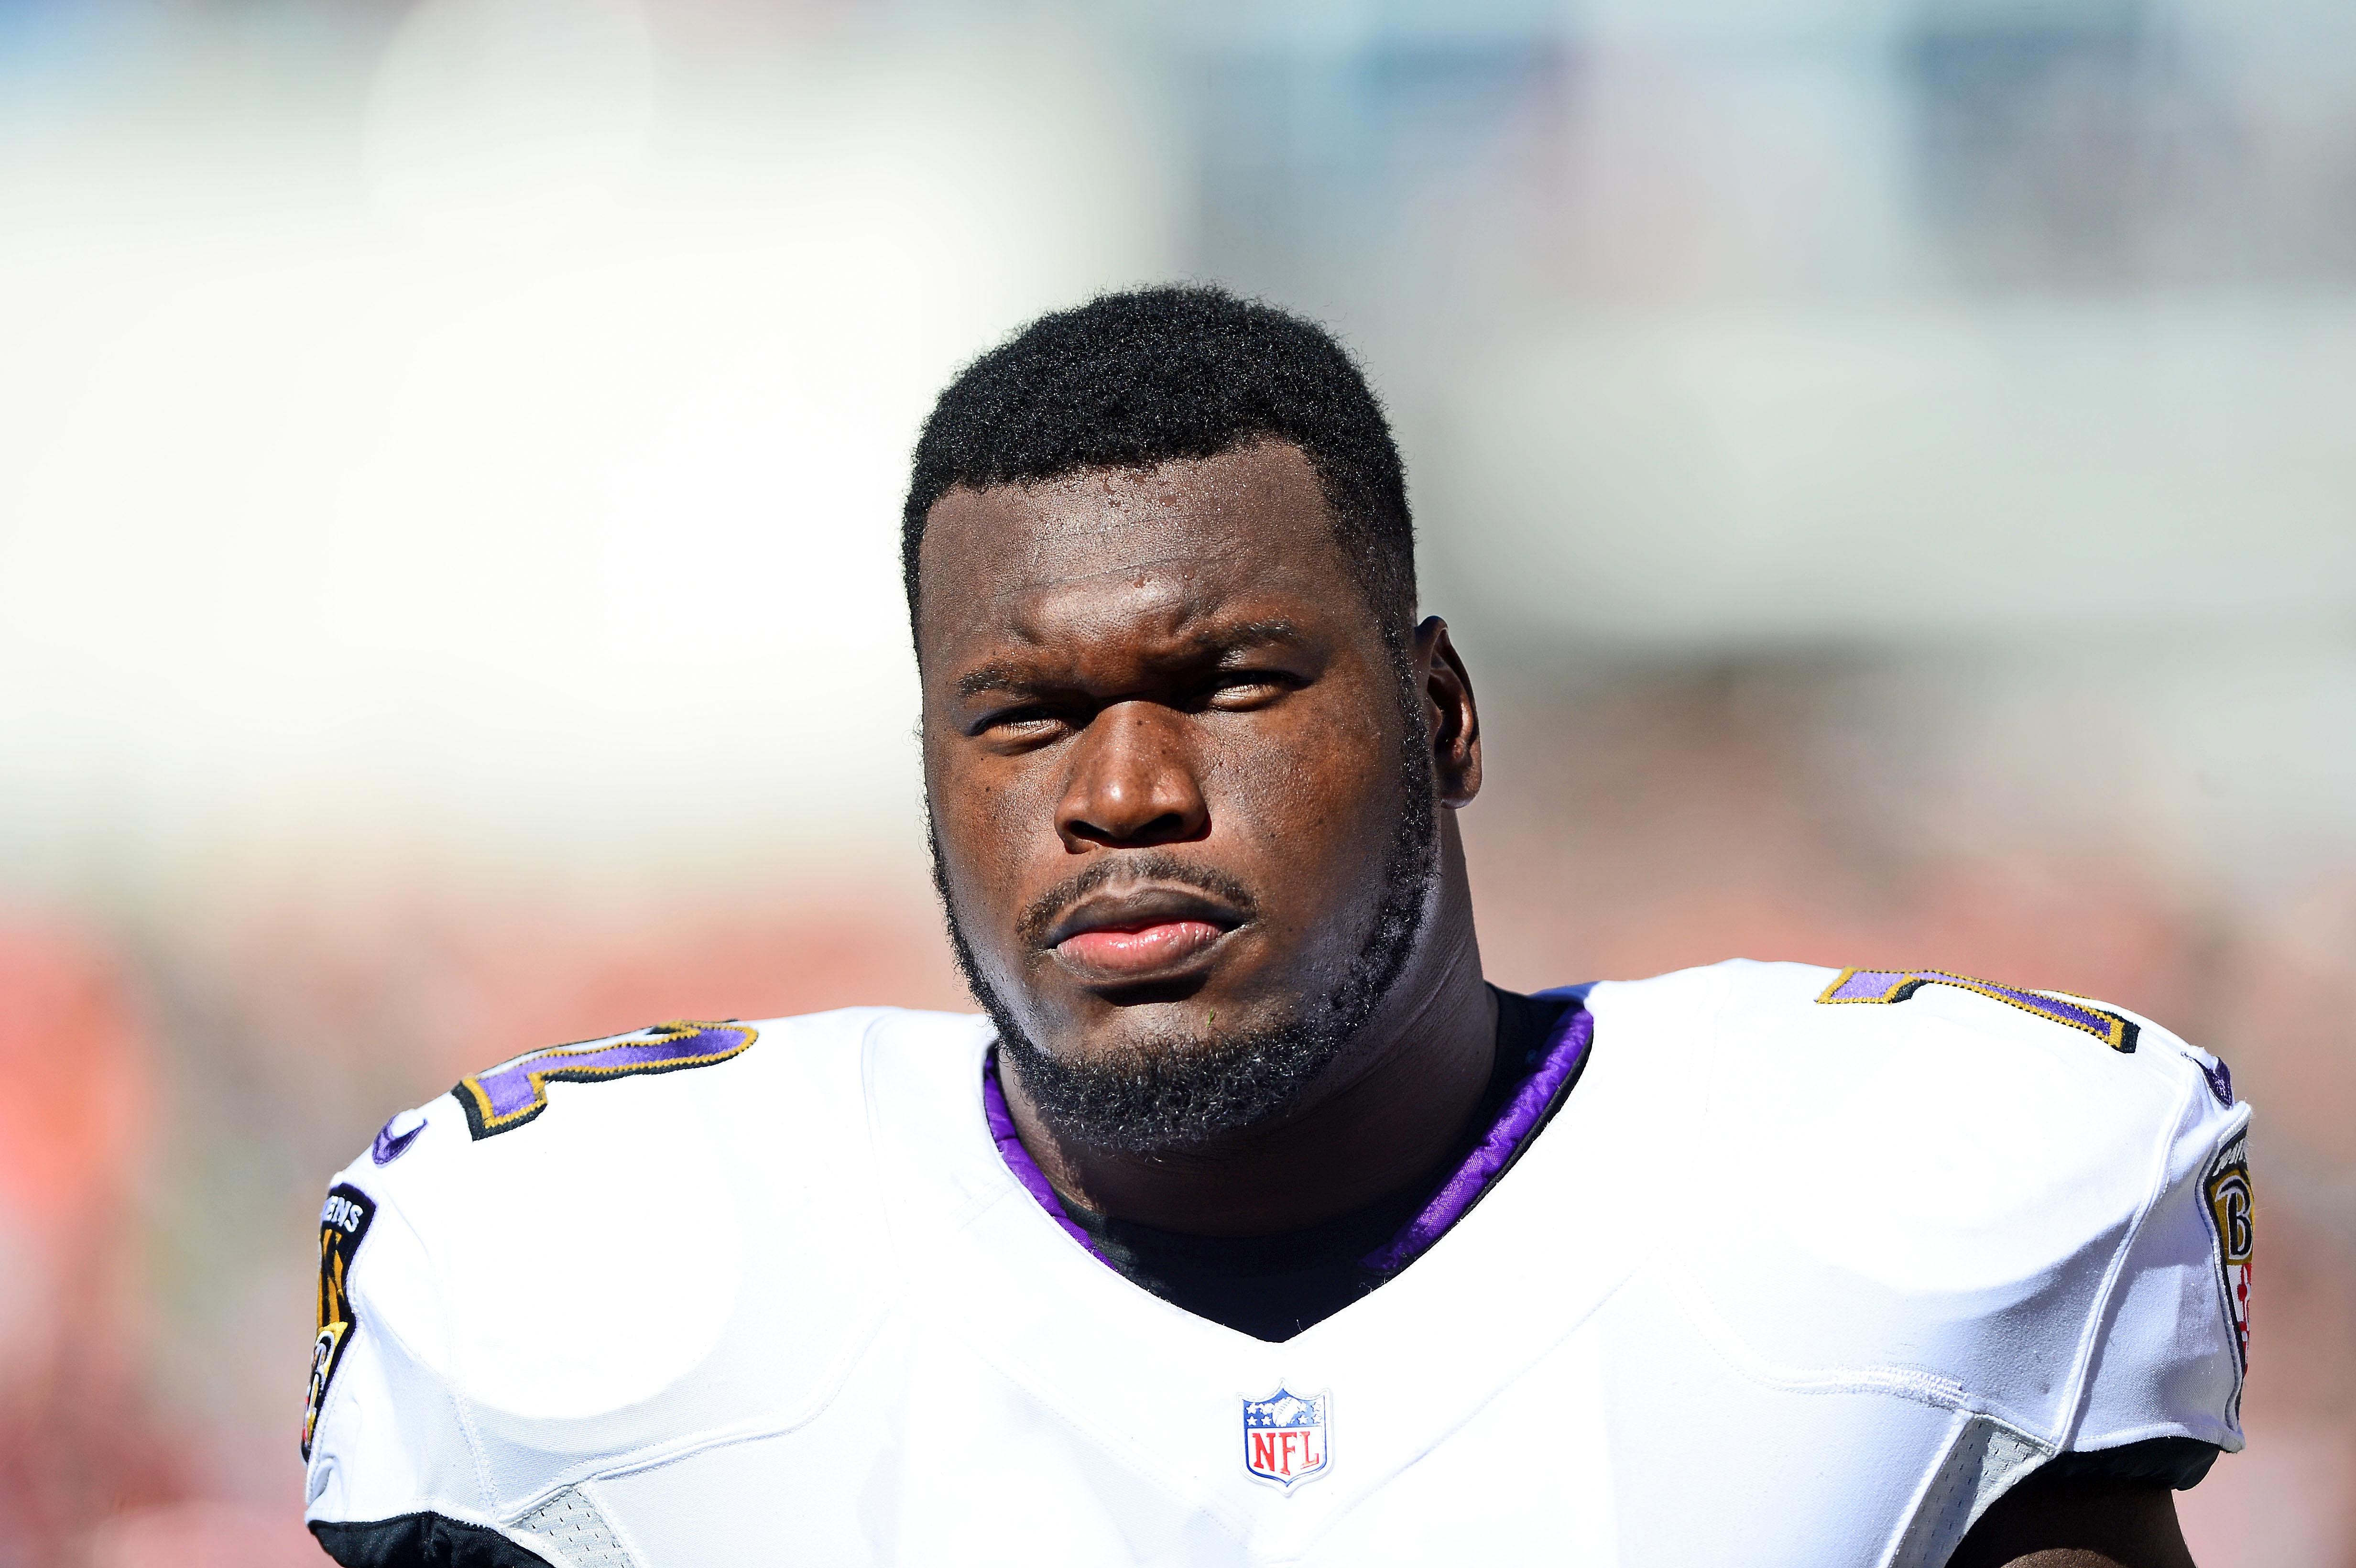 Osemele appears to be heading to Oakland, not Minnesota.